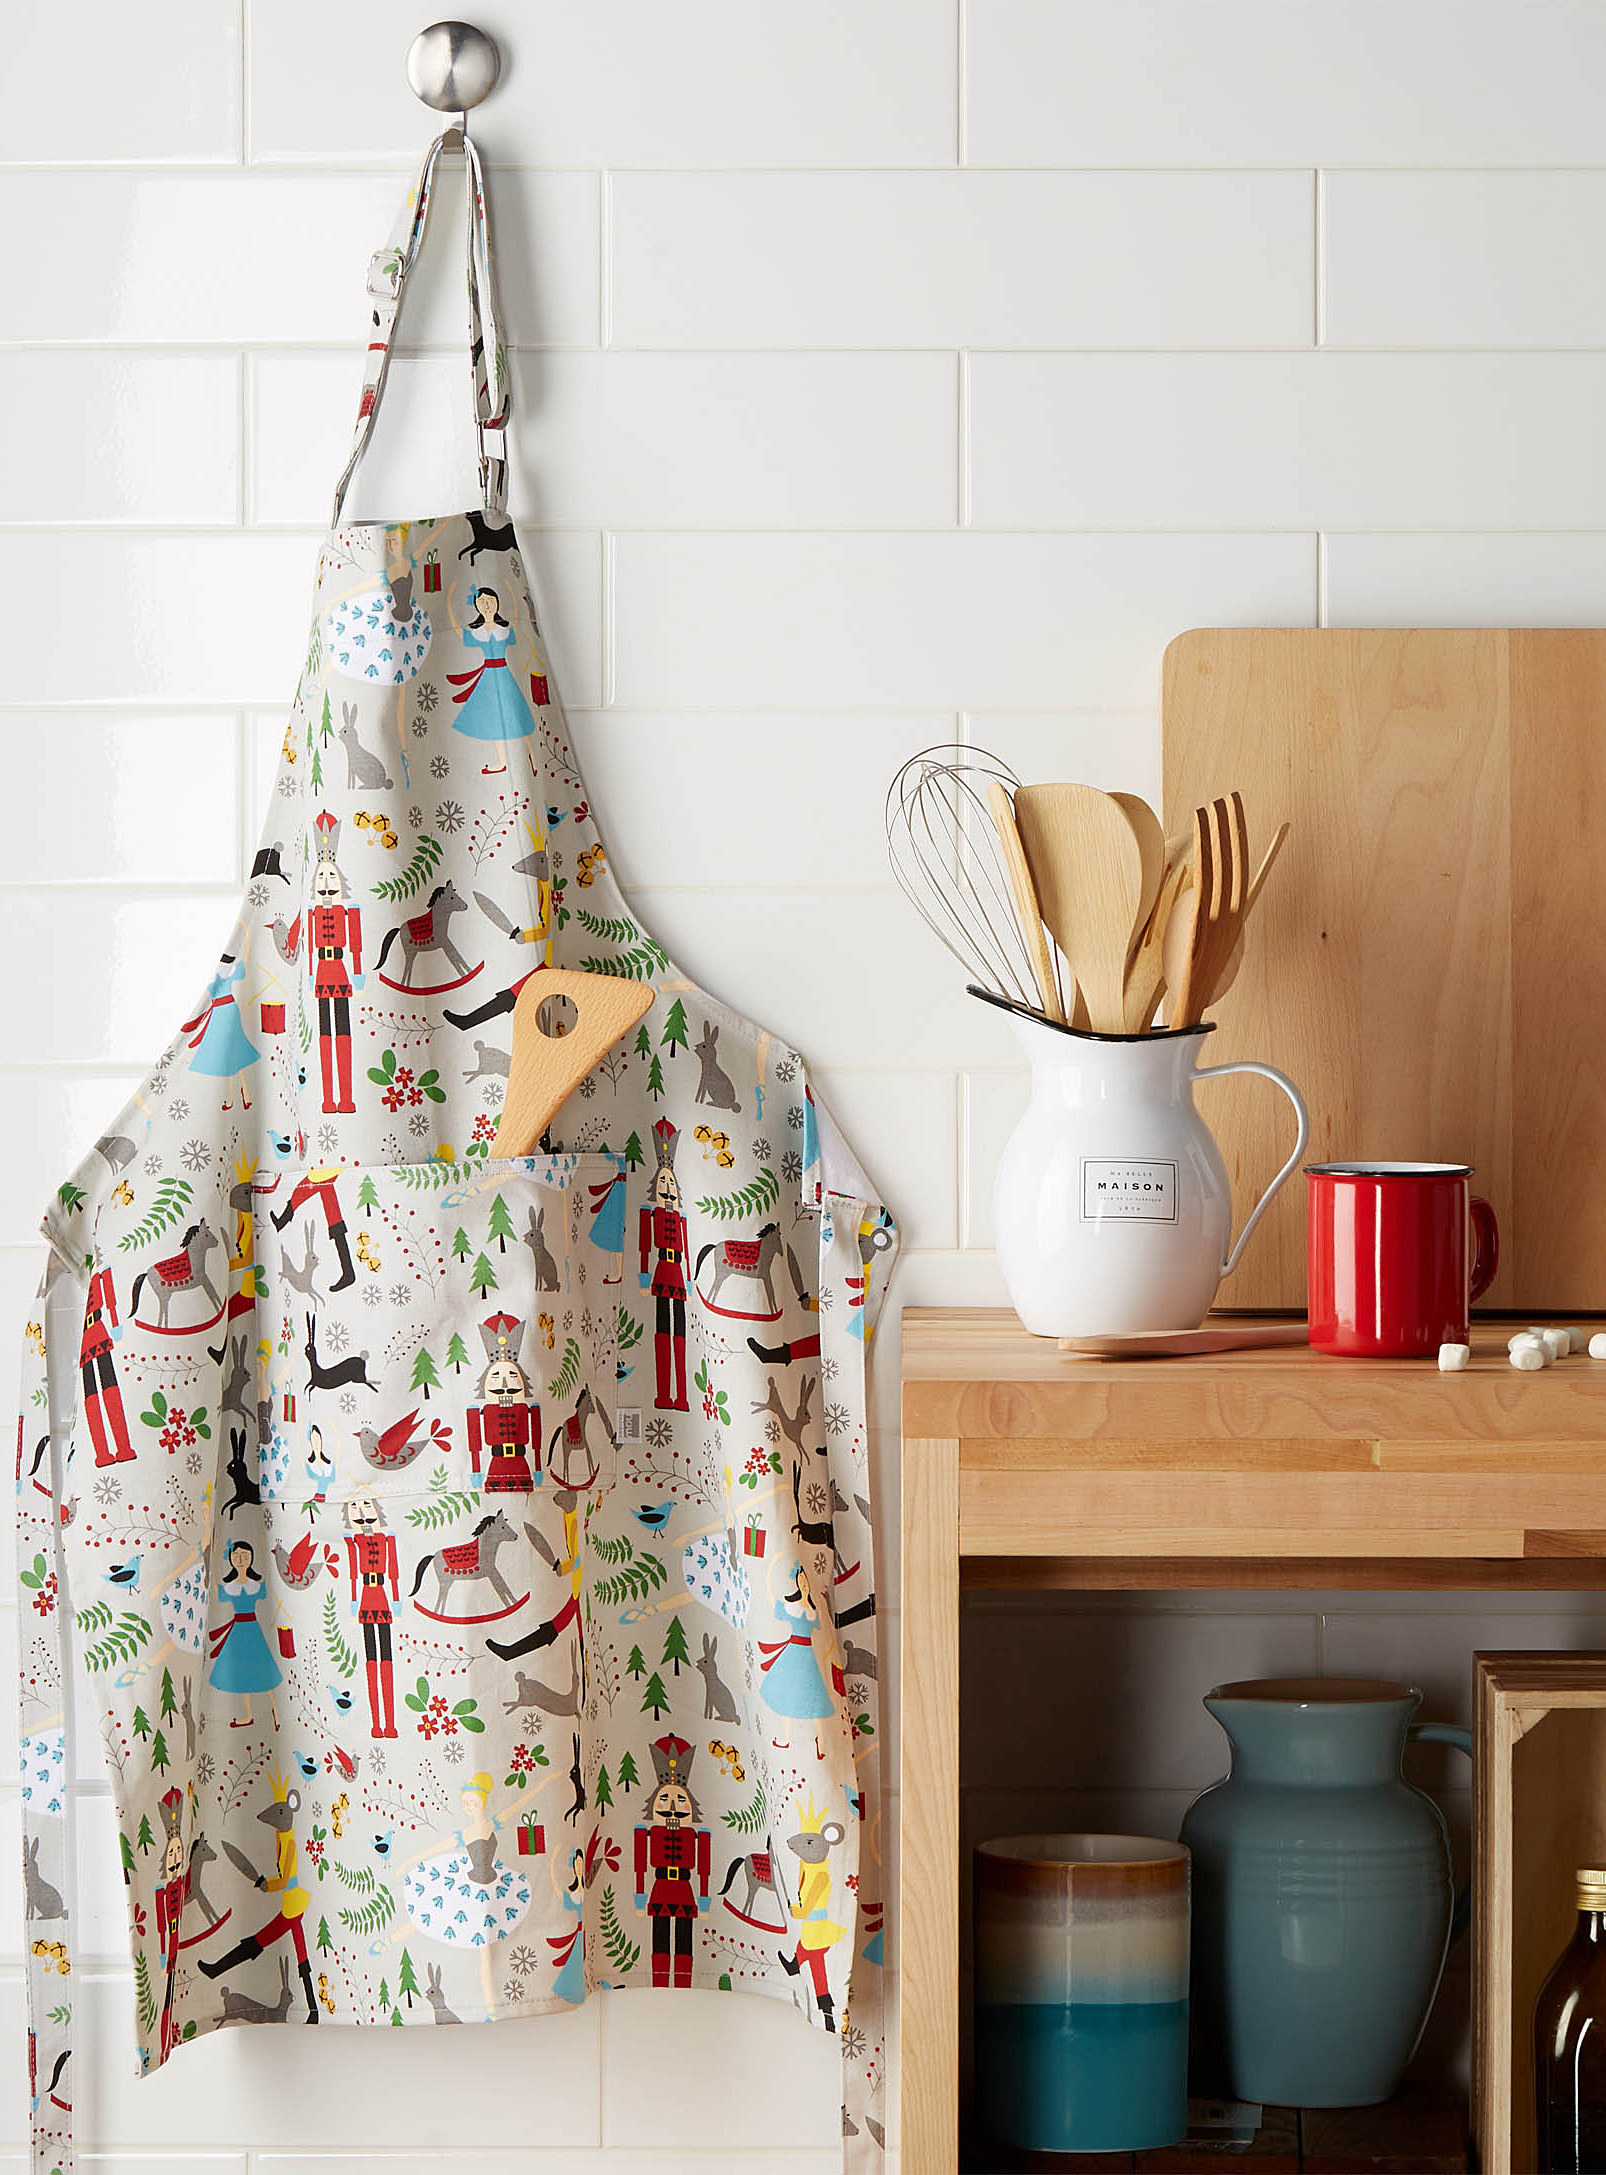 An apron with nutcrackers and Christmas decoration